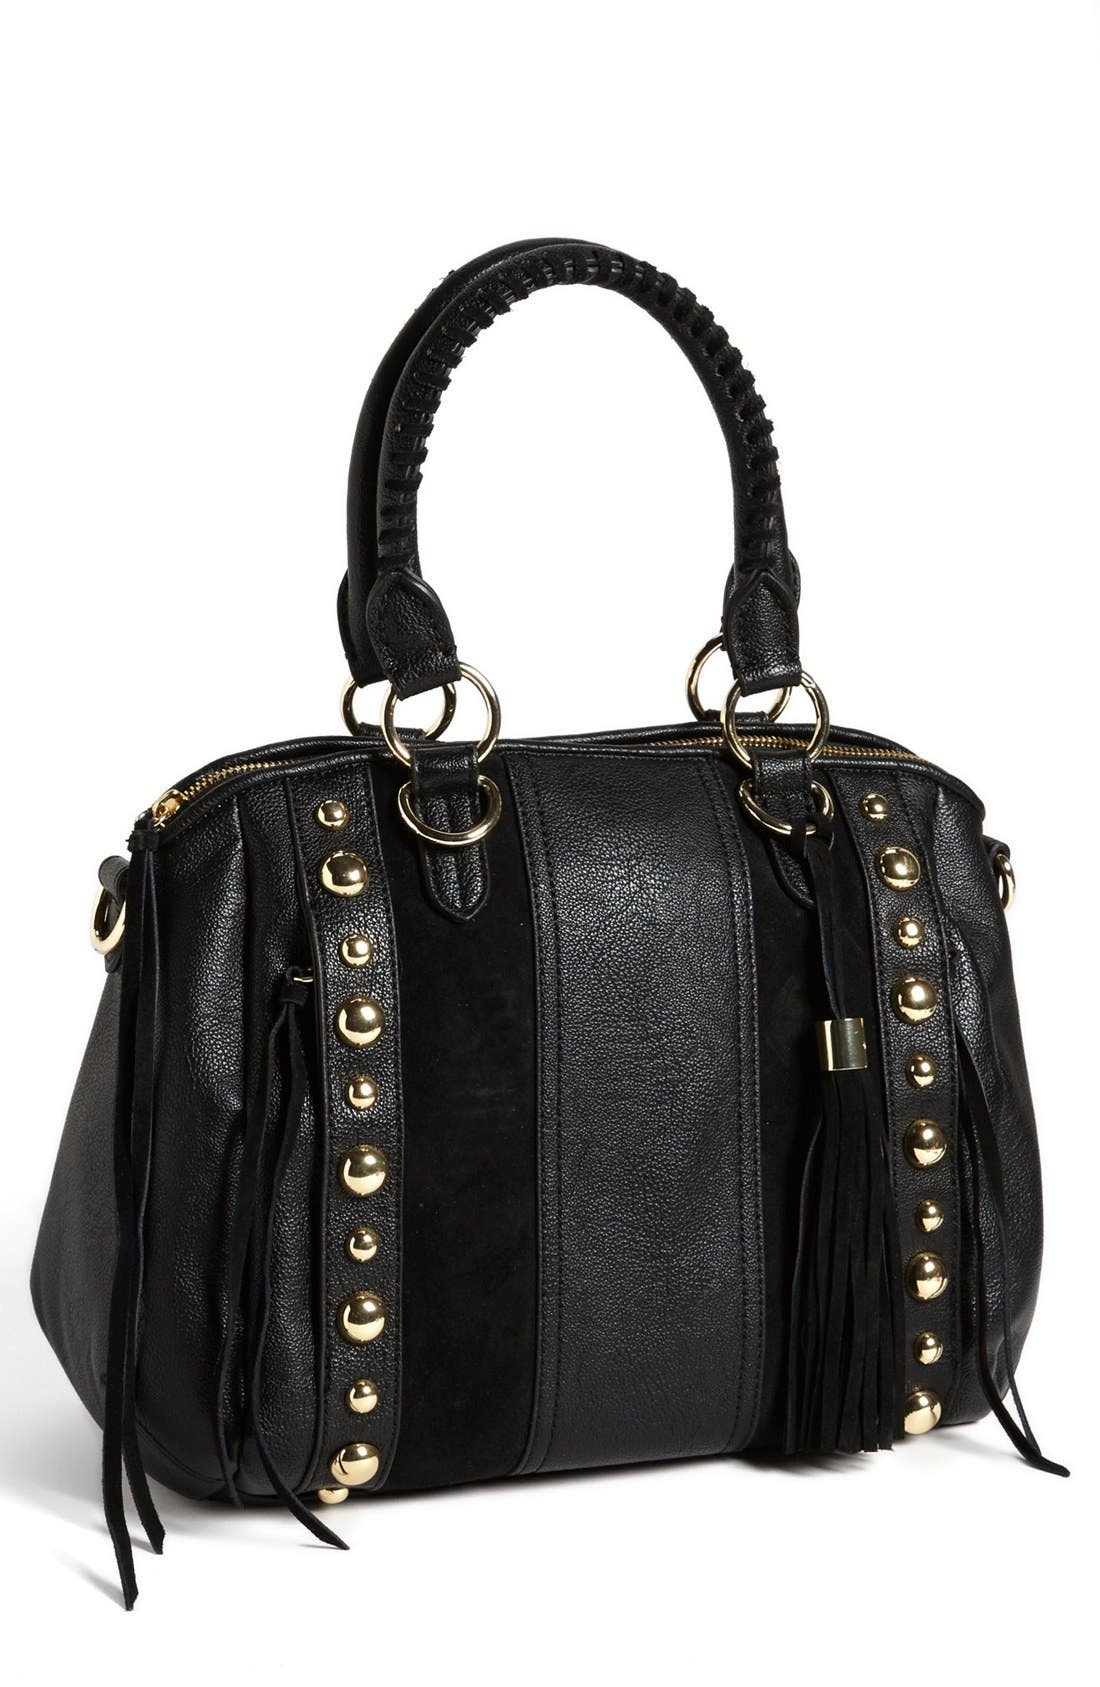 Alternate Image 1 Selected - Jessica Simpson 'Karina' Faux Leather Satchel